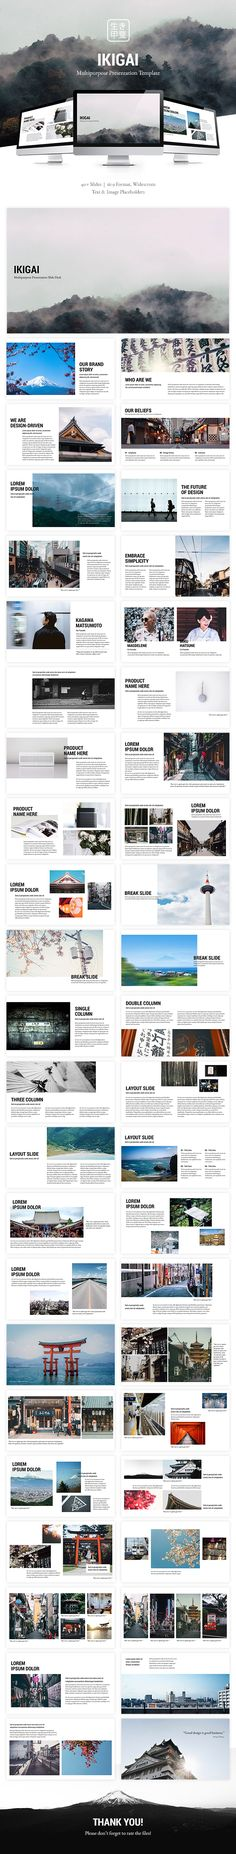 Ikigai #Multipurpose Powerpoint Template - #PowerPoint Templates Presentation Templates